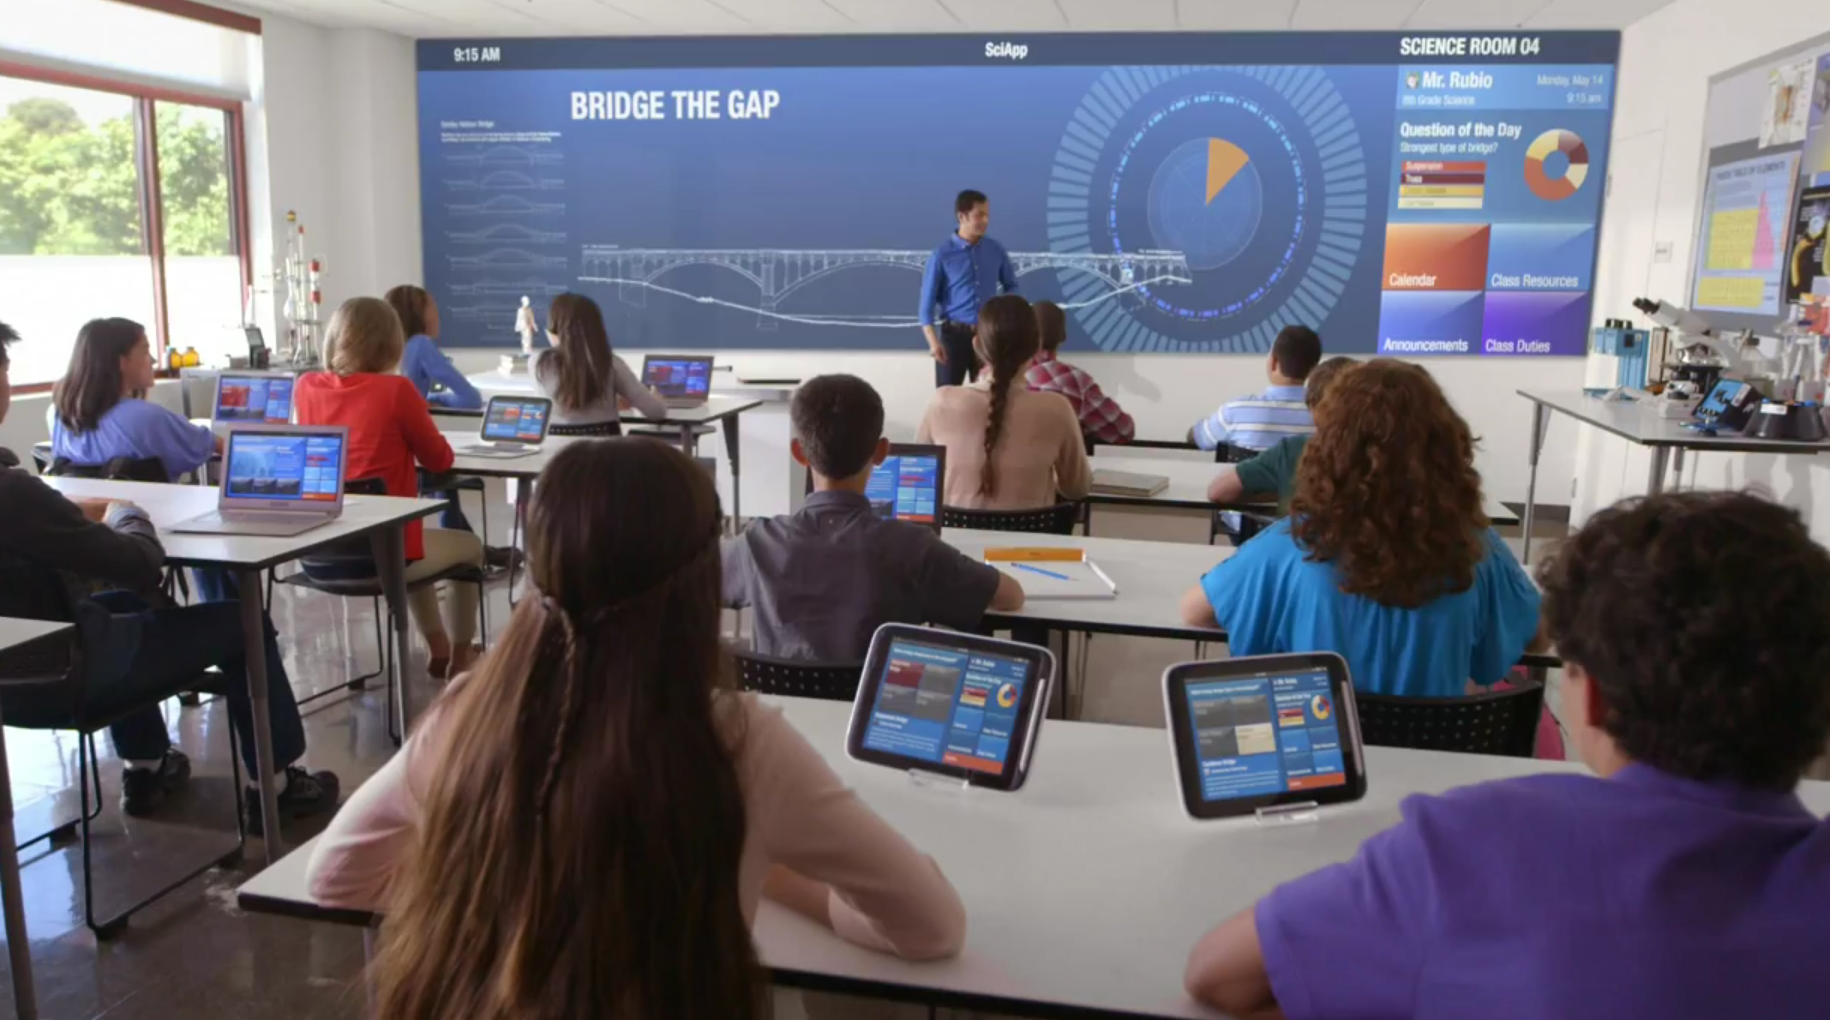 Top 3 Latest Technologies Used In Classrooms